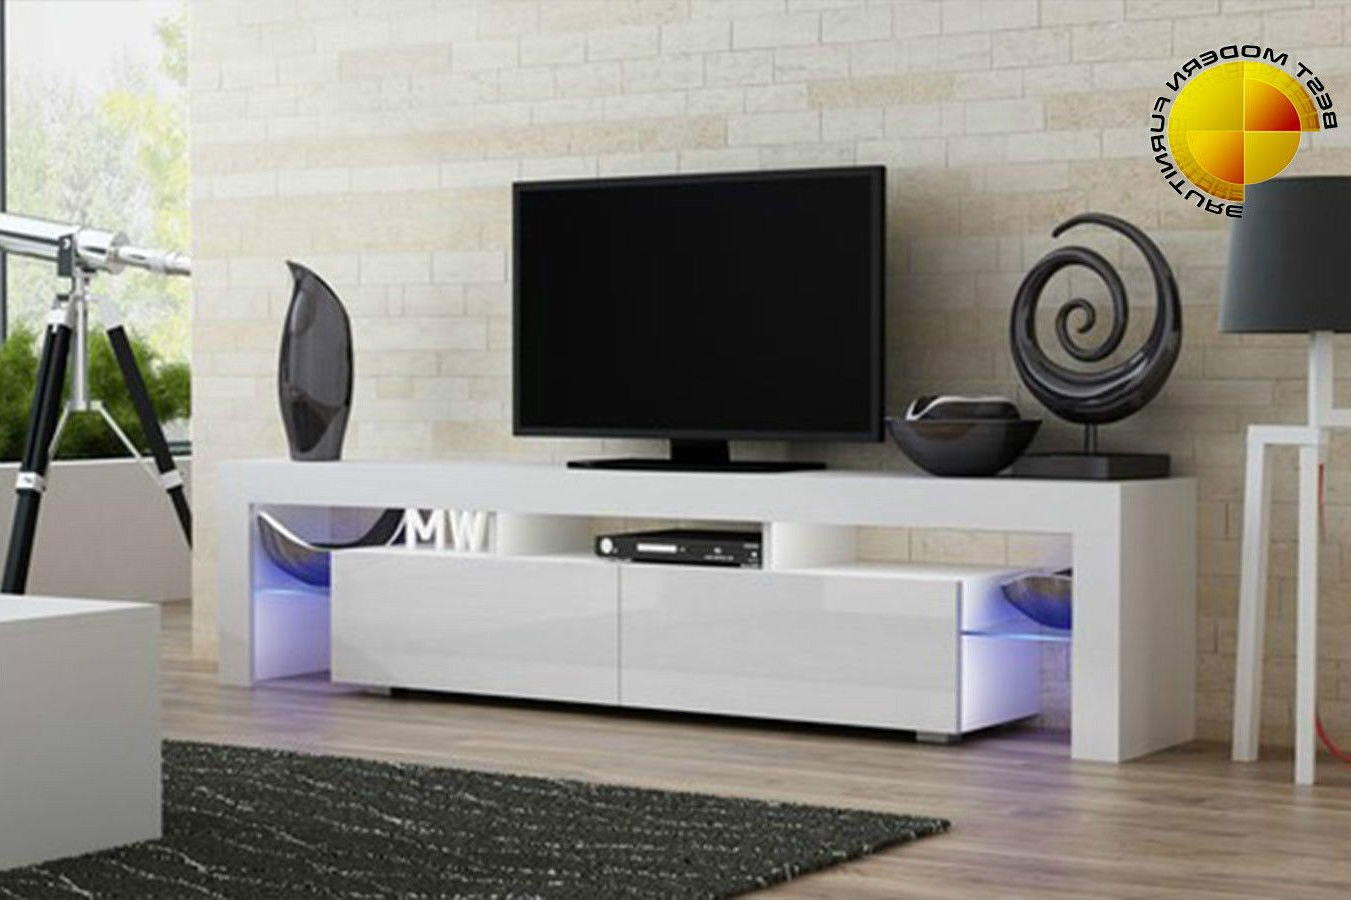 Modern Tv Stand 200cm High Gloss Cabinet Free Rgb Led Lights Black Regarding 2017 White Contemporary Tv Stands (View 20 of 20)